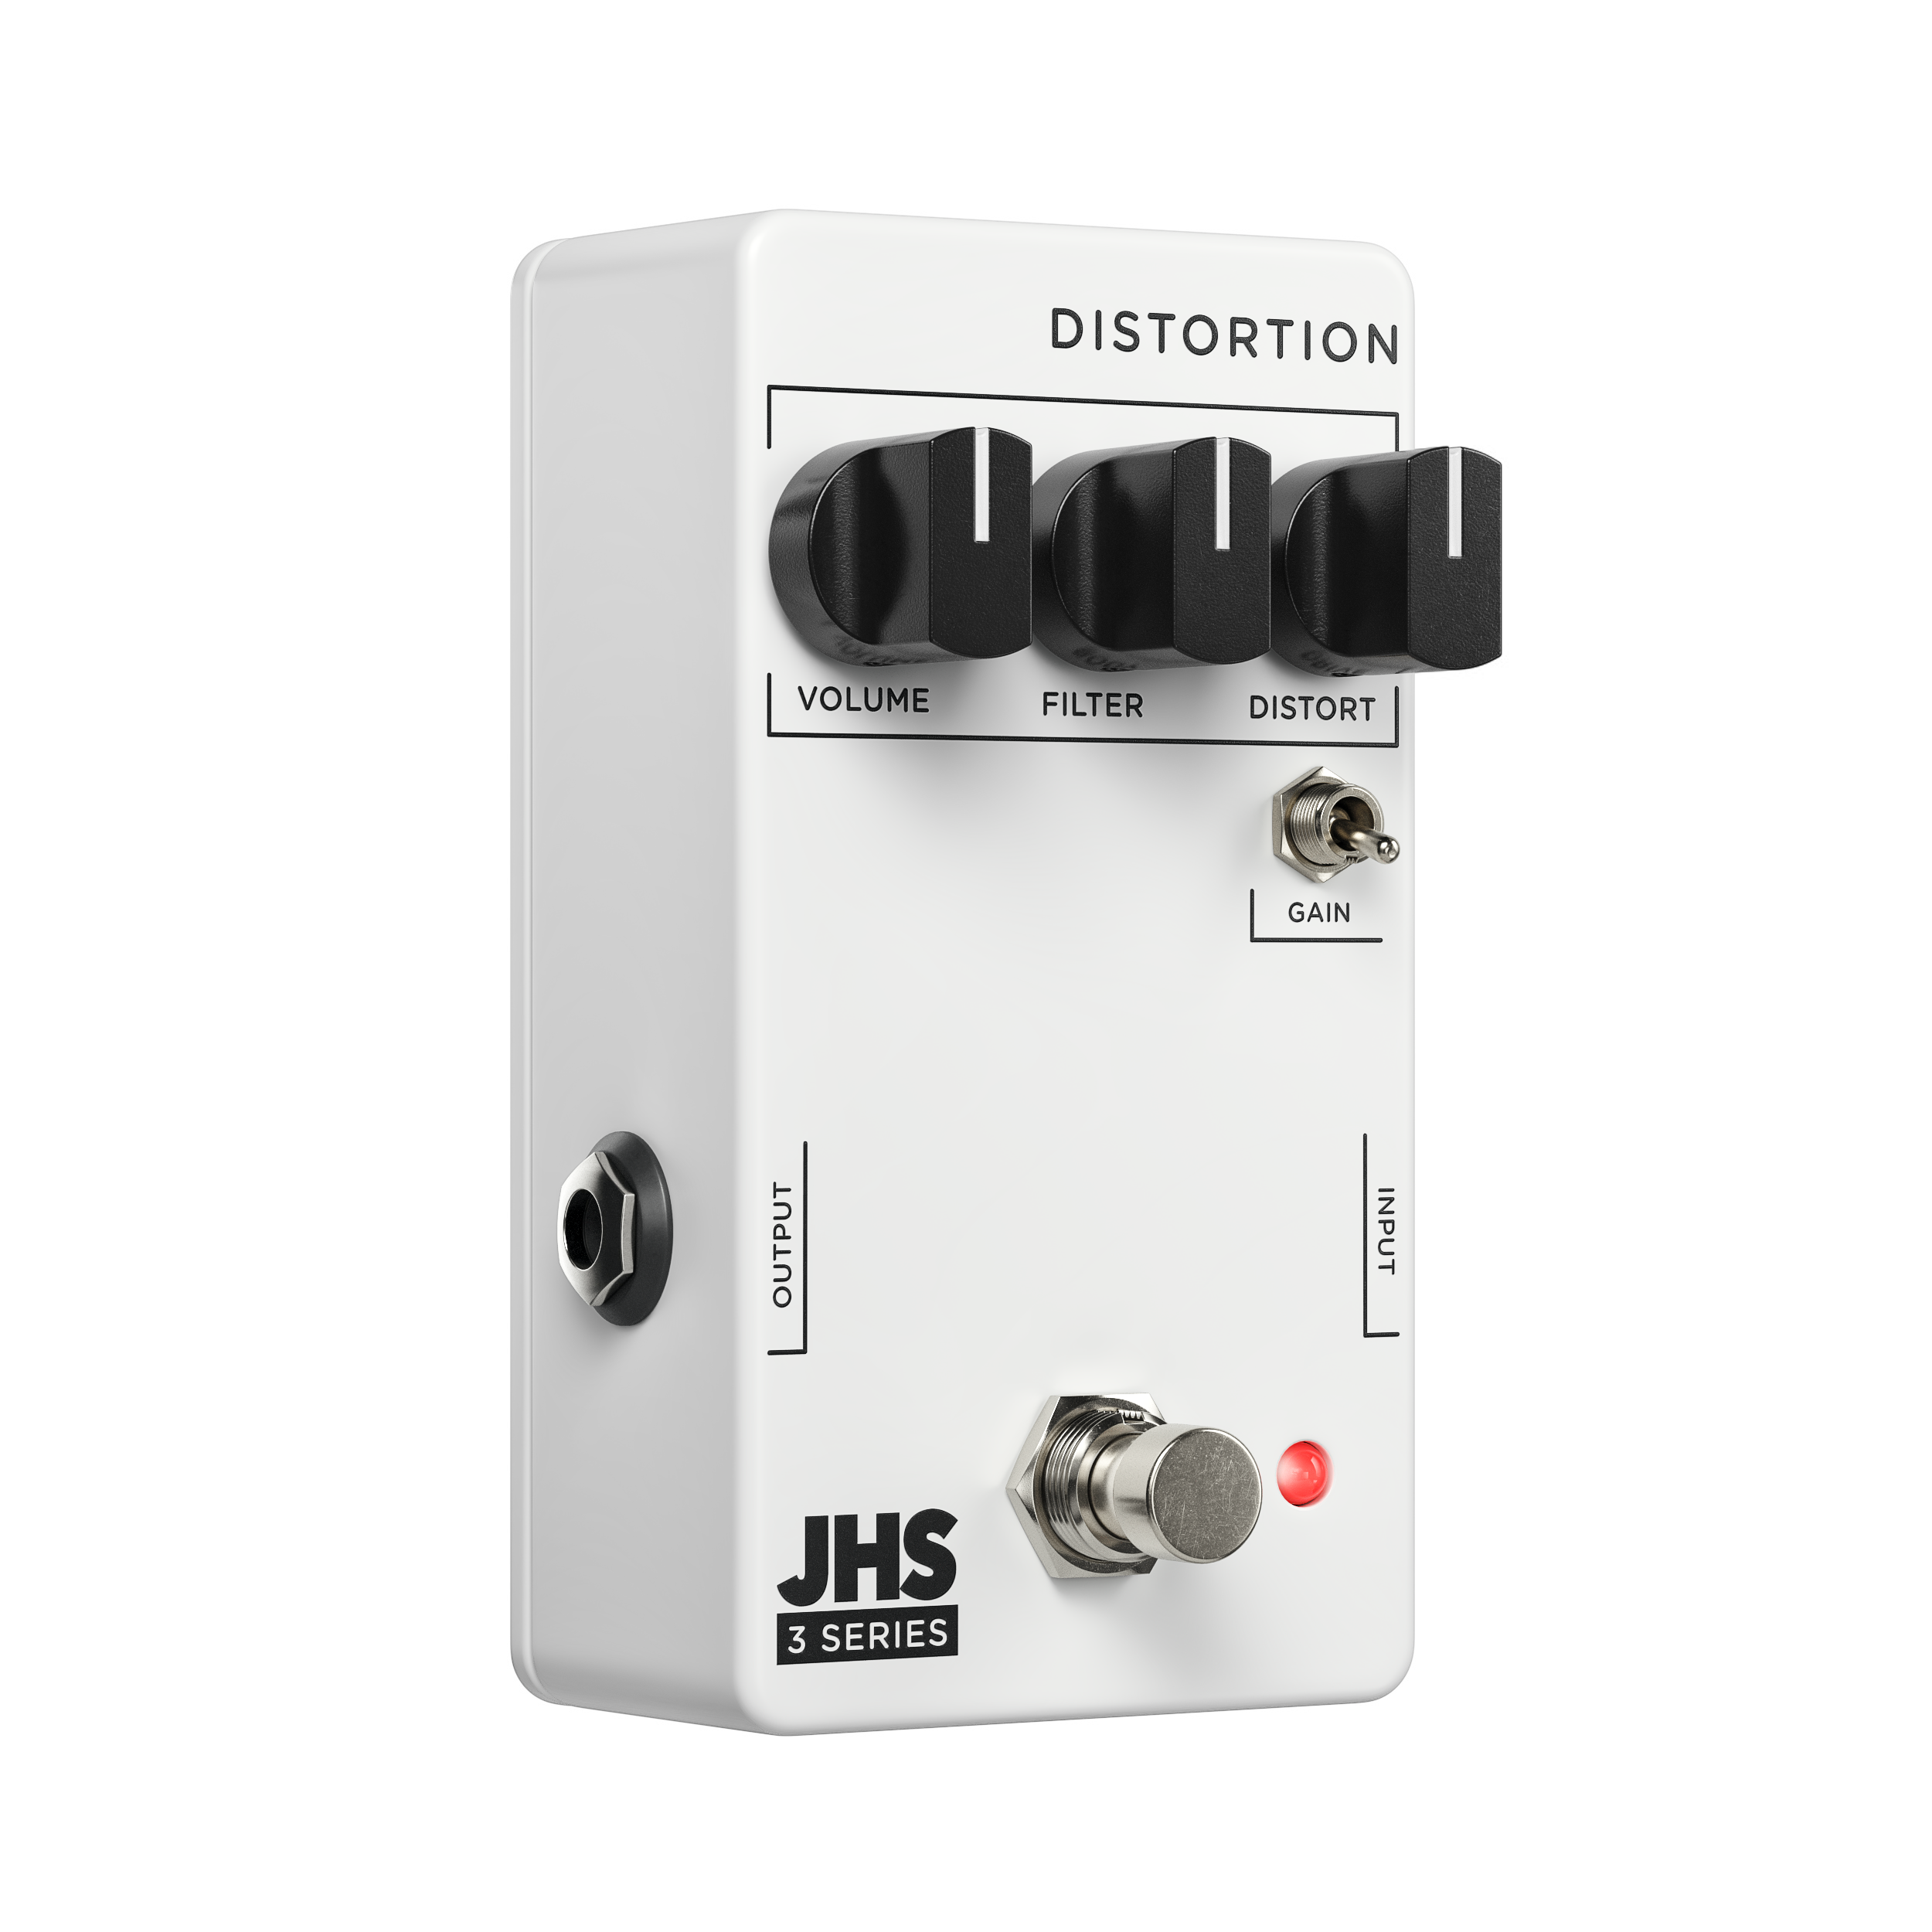 JHS-Pedals-3-Series-Distortion-angle